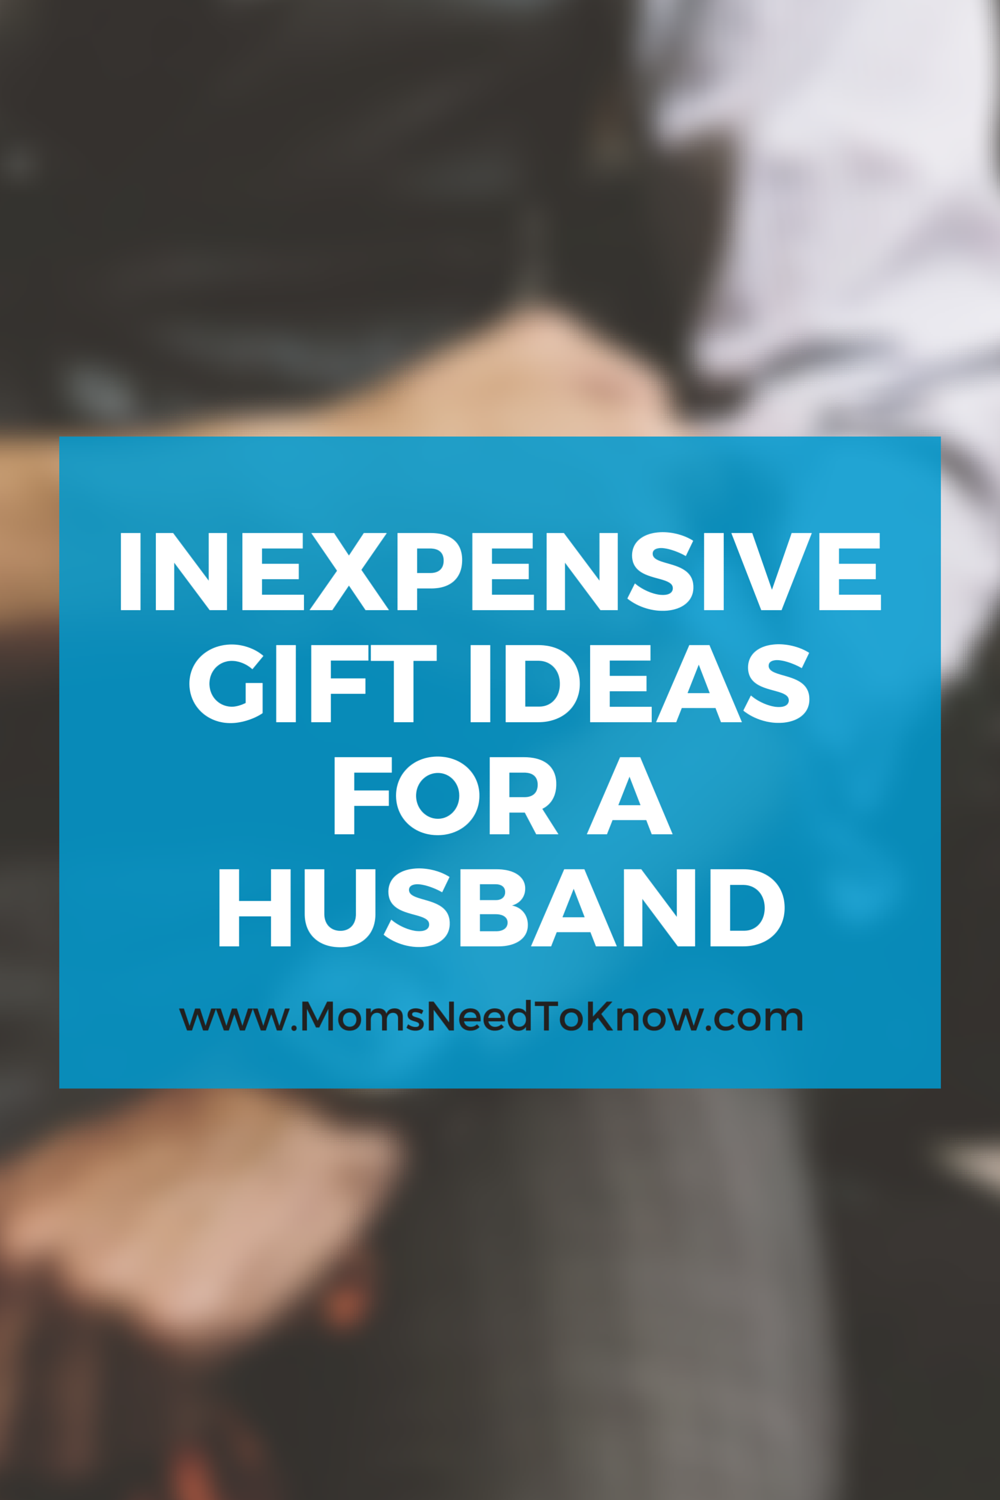 INEXPENSIVE GIFT IDEAS FOR A HUSBAND